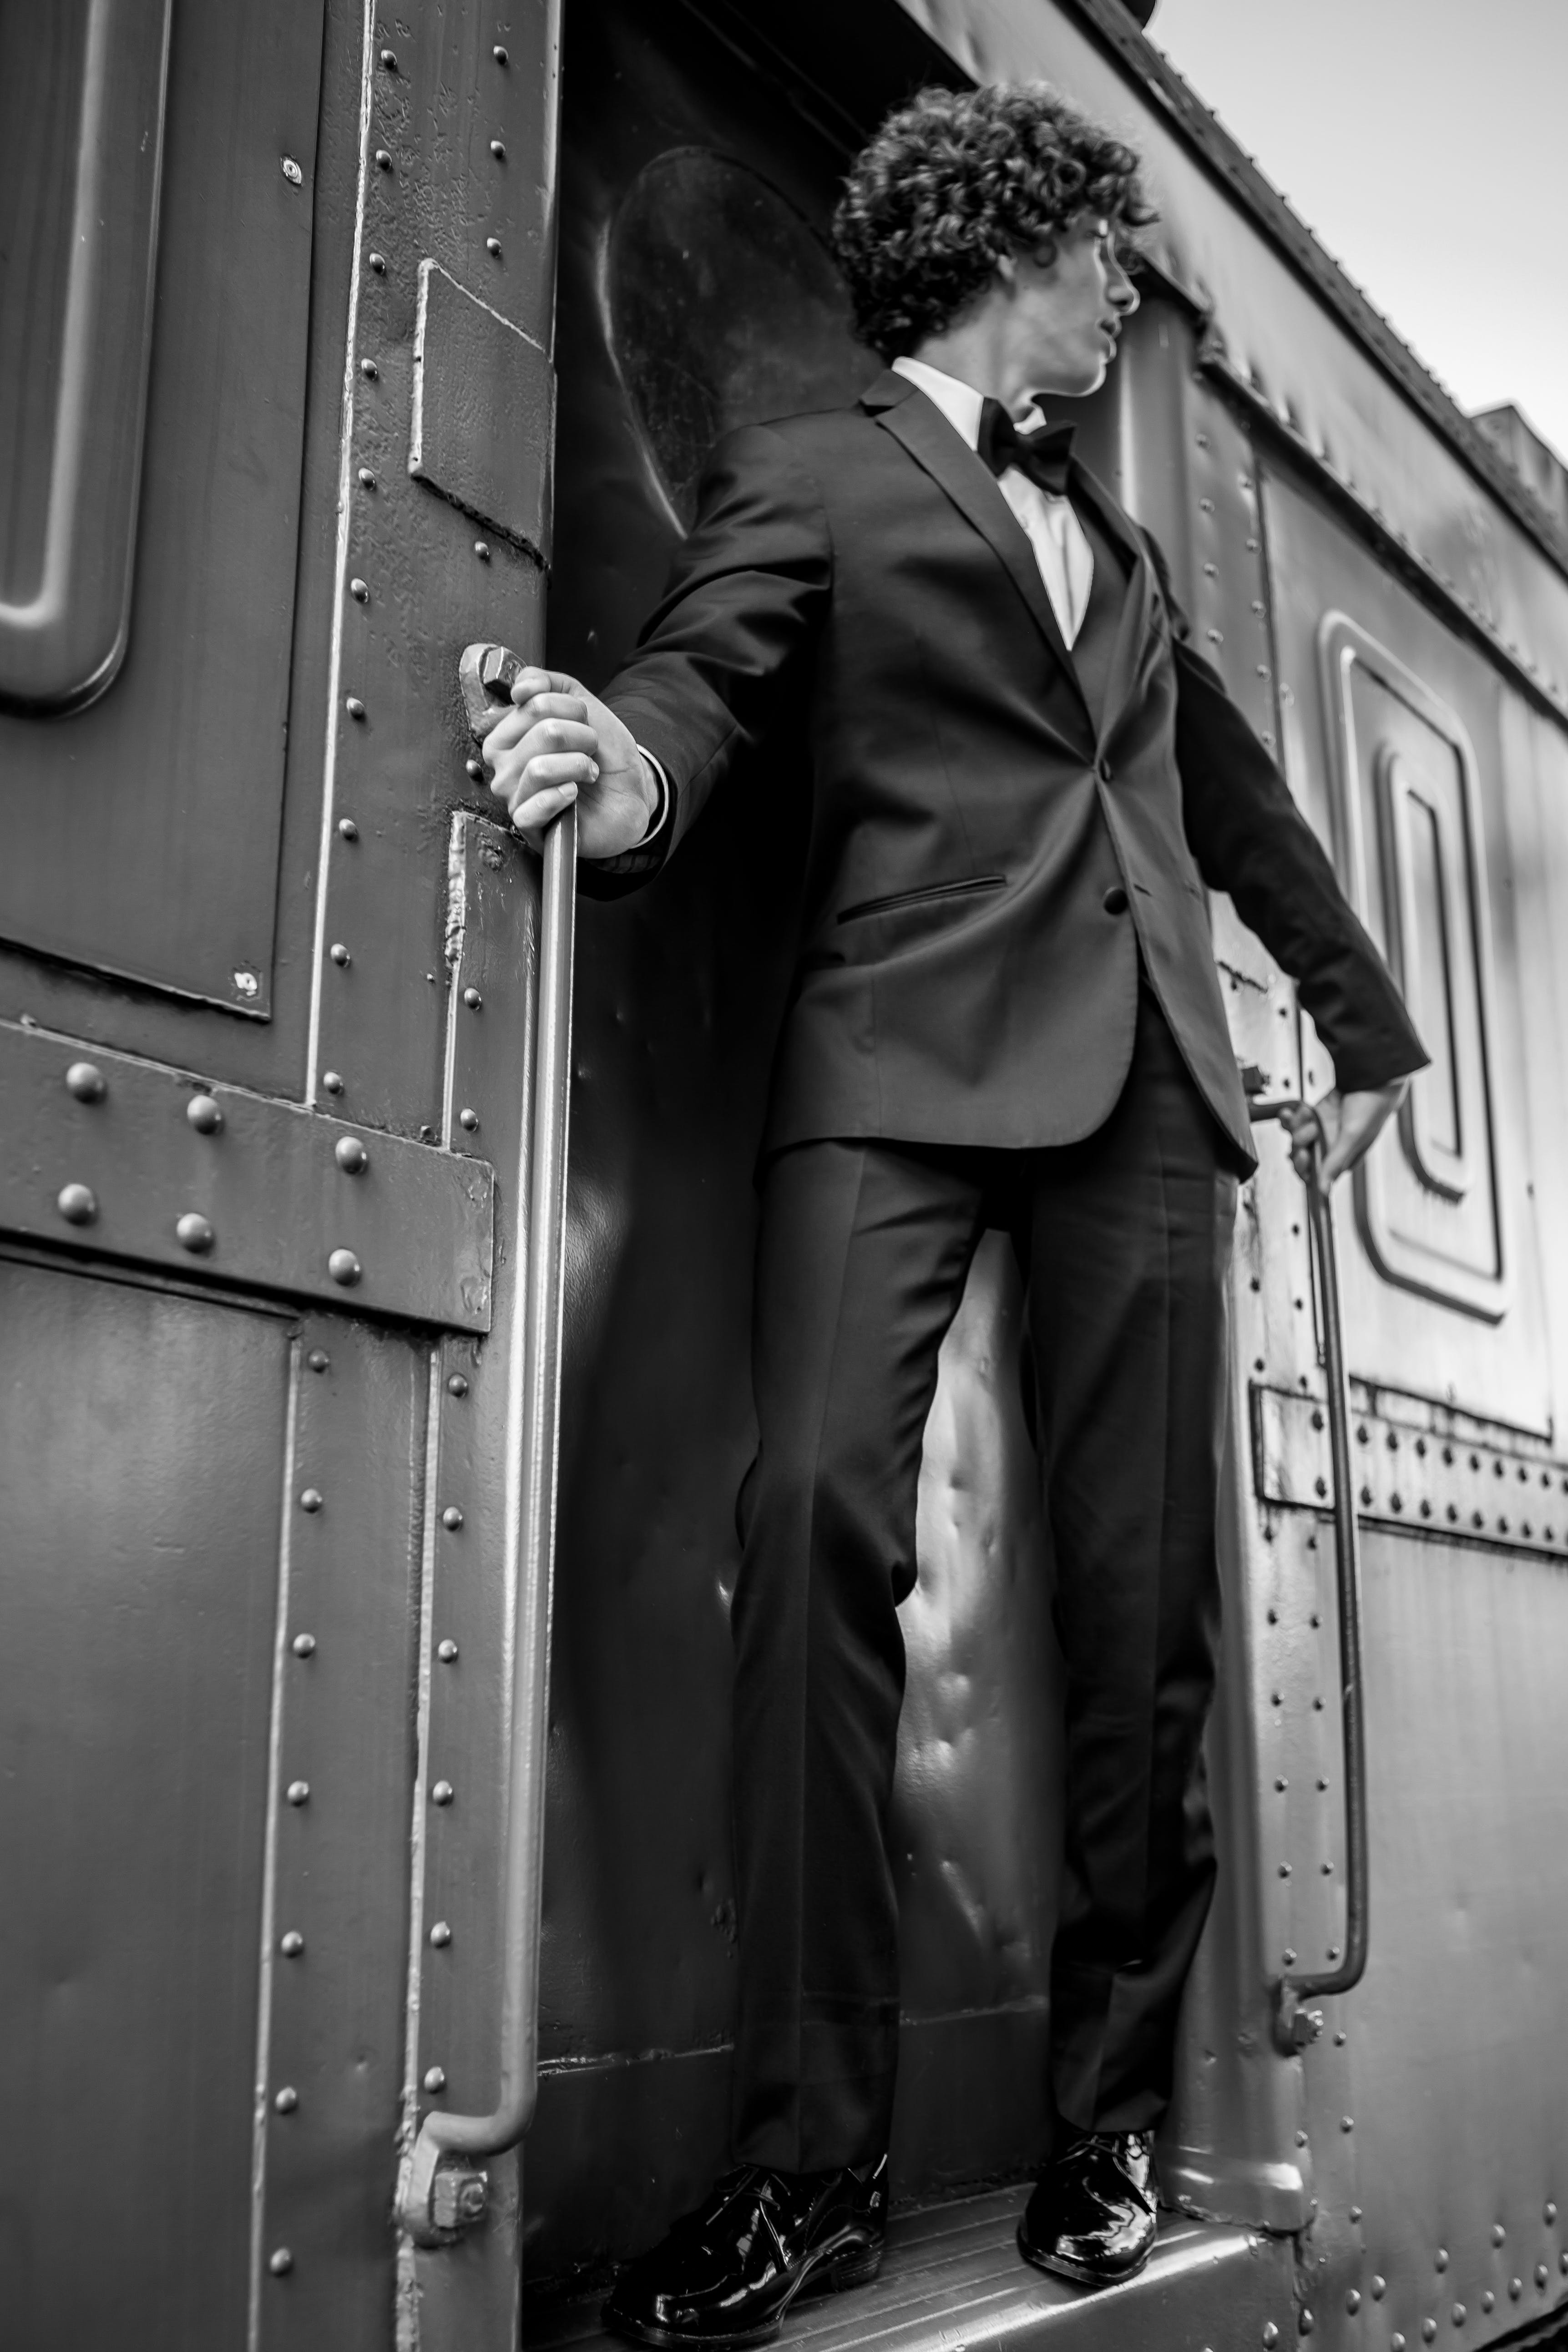 Grayscale Photography of Man Riding Train